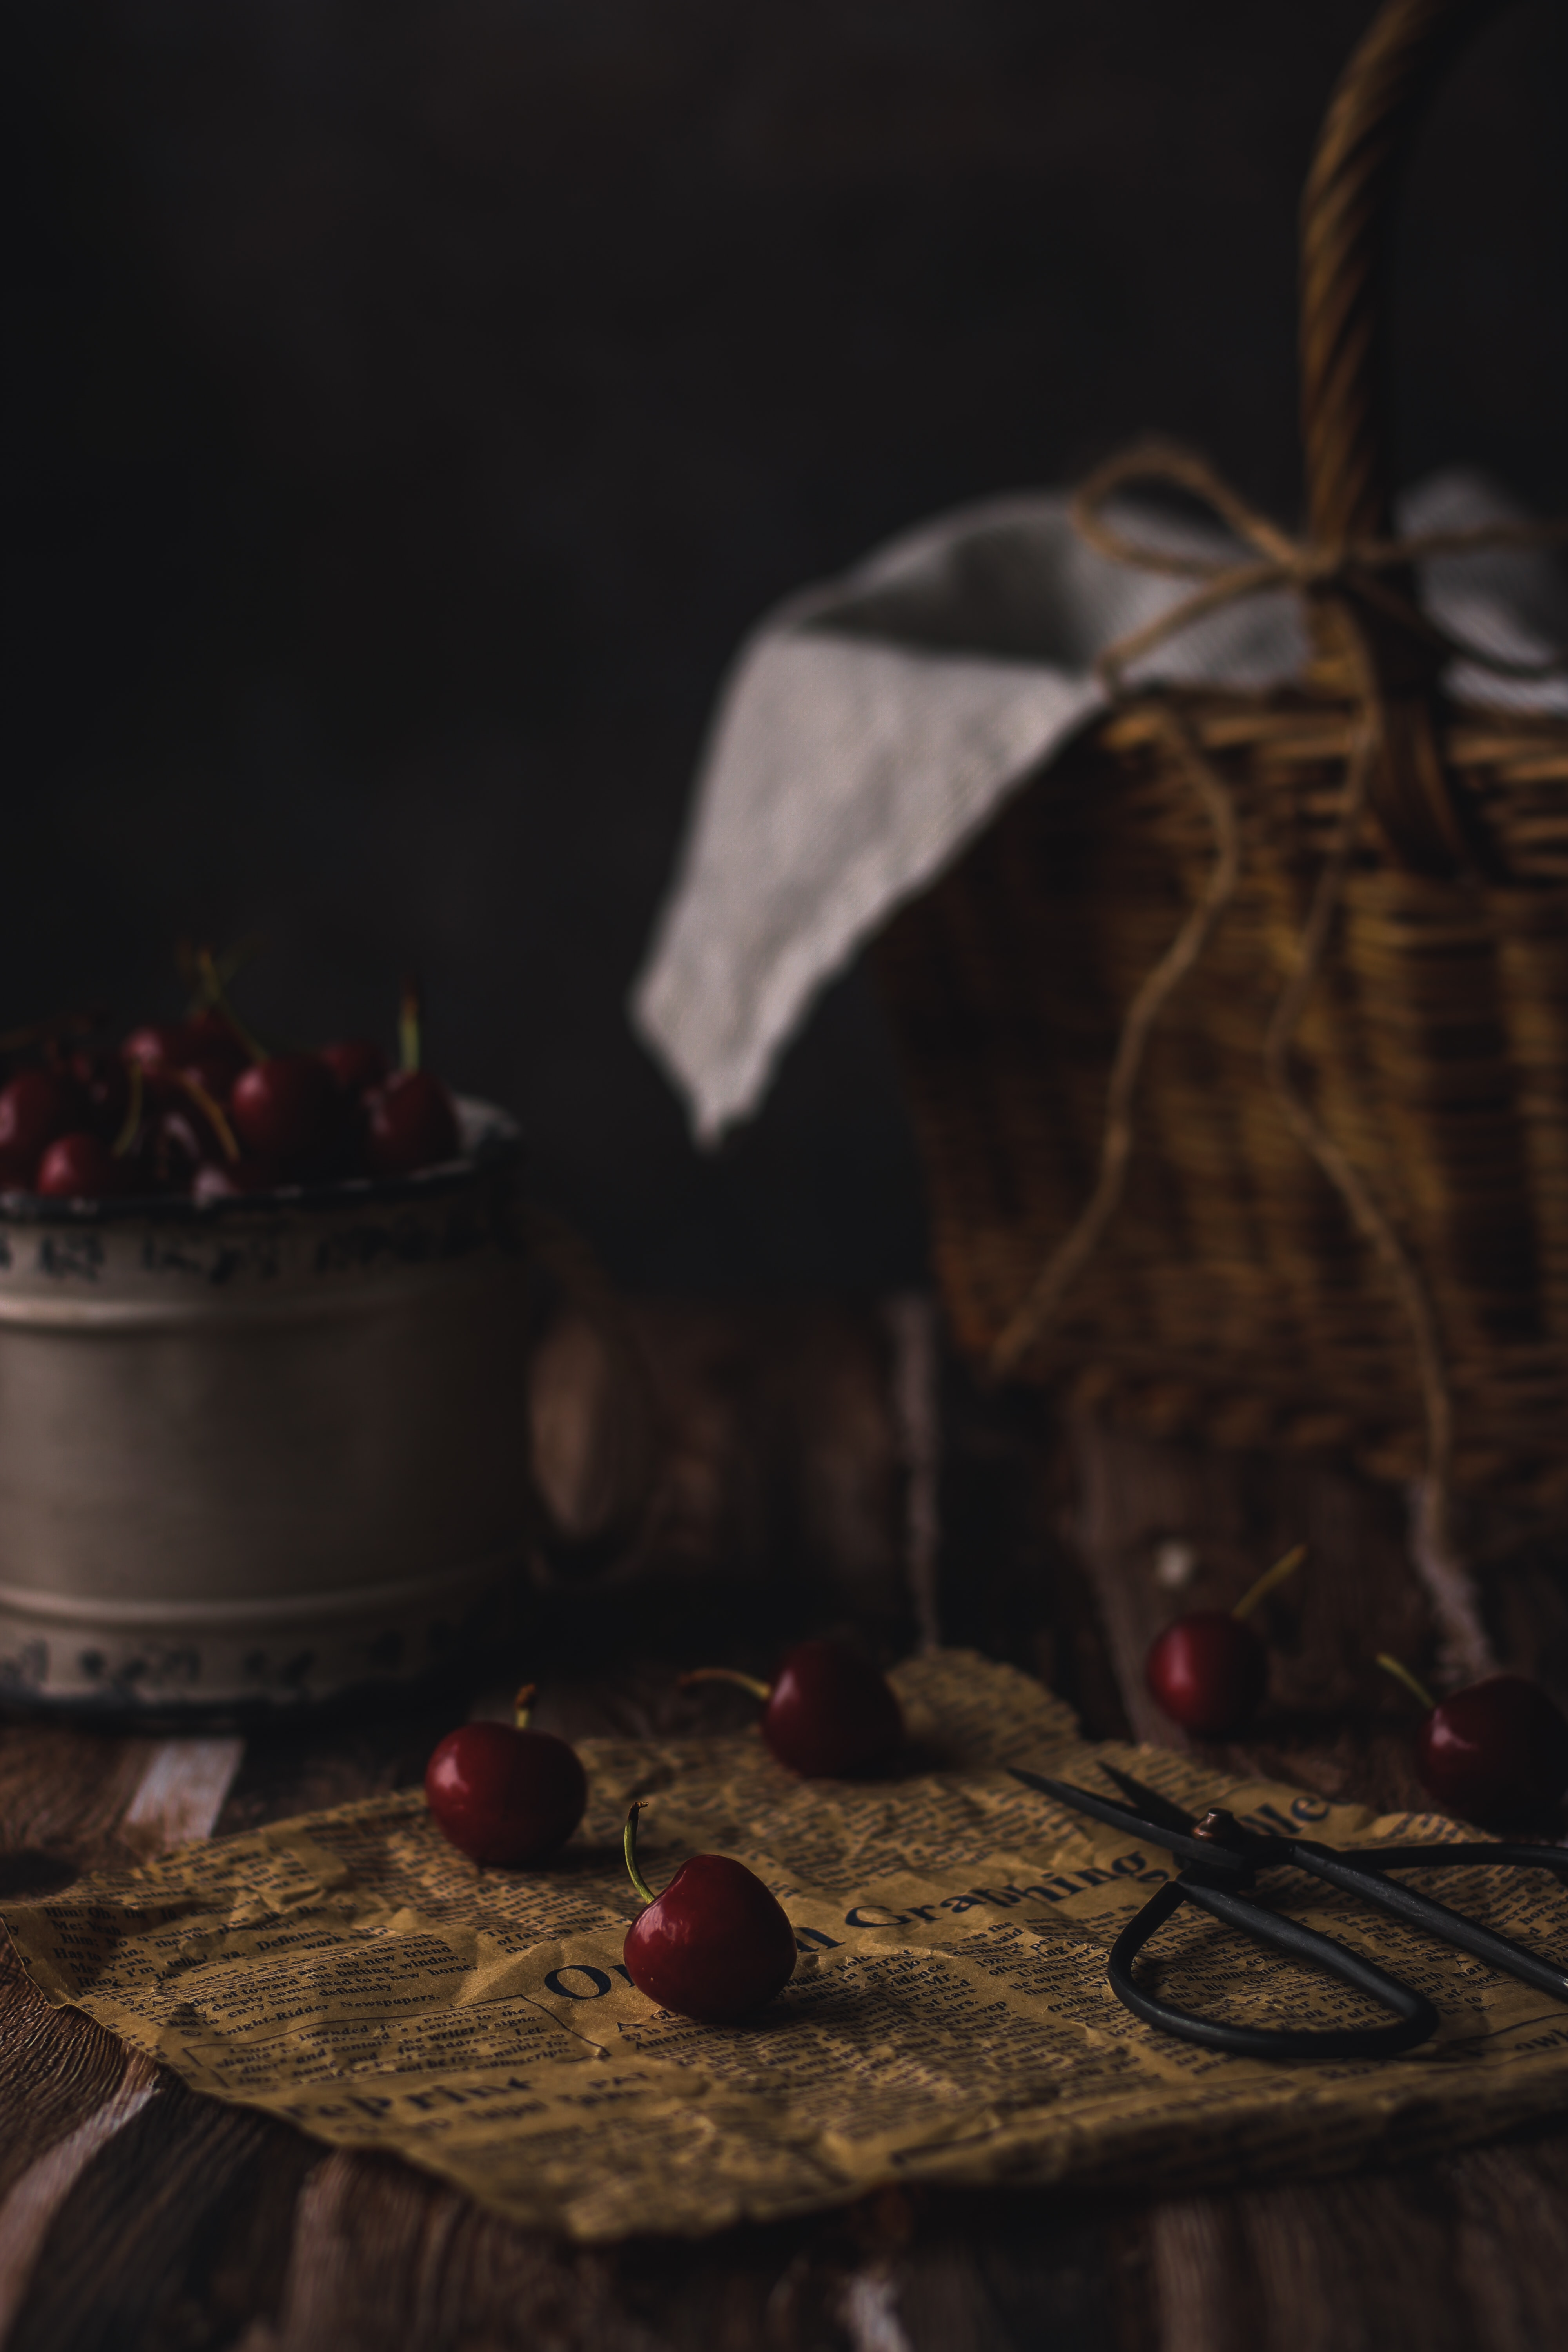 116070 download wallpaper Food, Paper, Scissors, Basket, Berries, Sweet Cherry screensavers and pictures for free